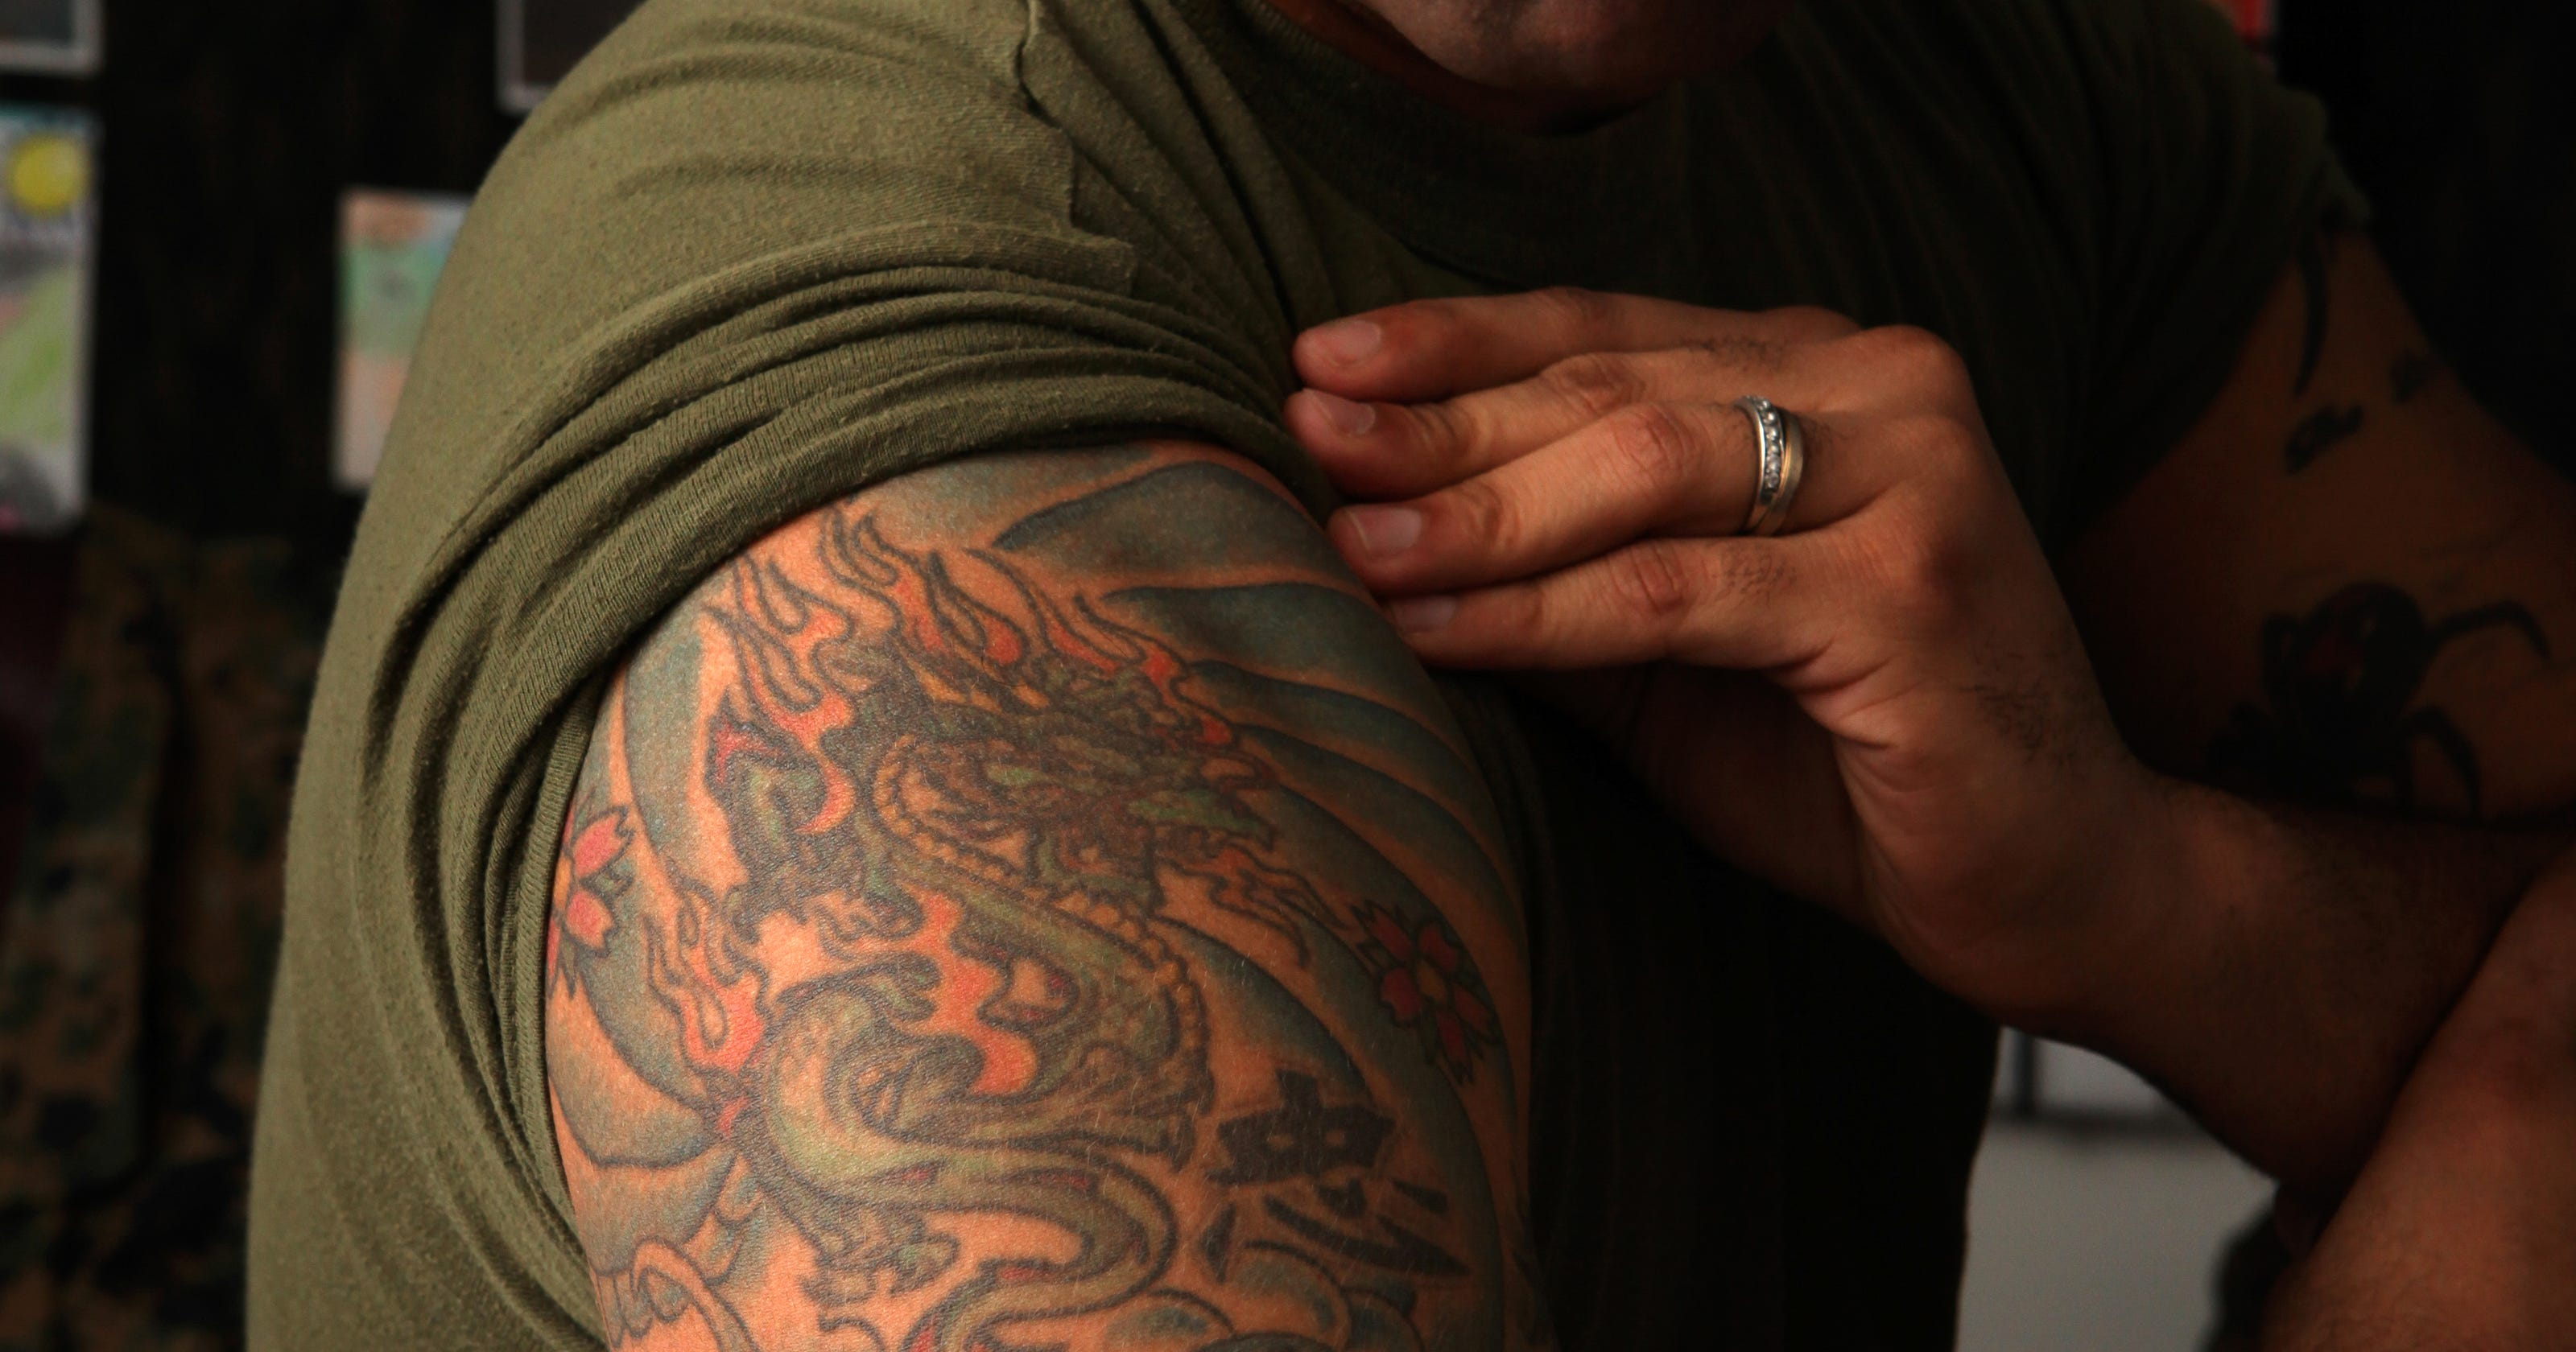 Marine corps to update its tattoo policy after review for Marine corps tattoo regulations